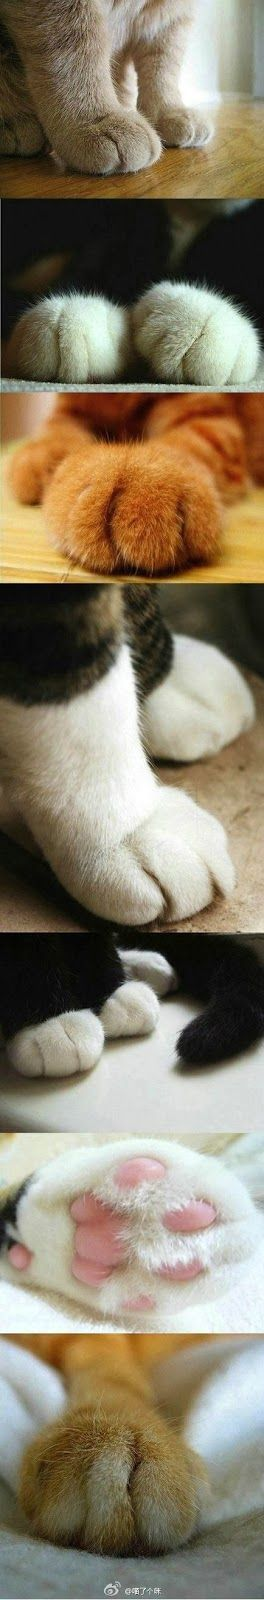 Kitteh paws... I love them!